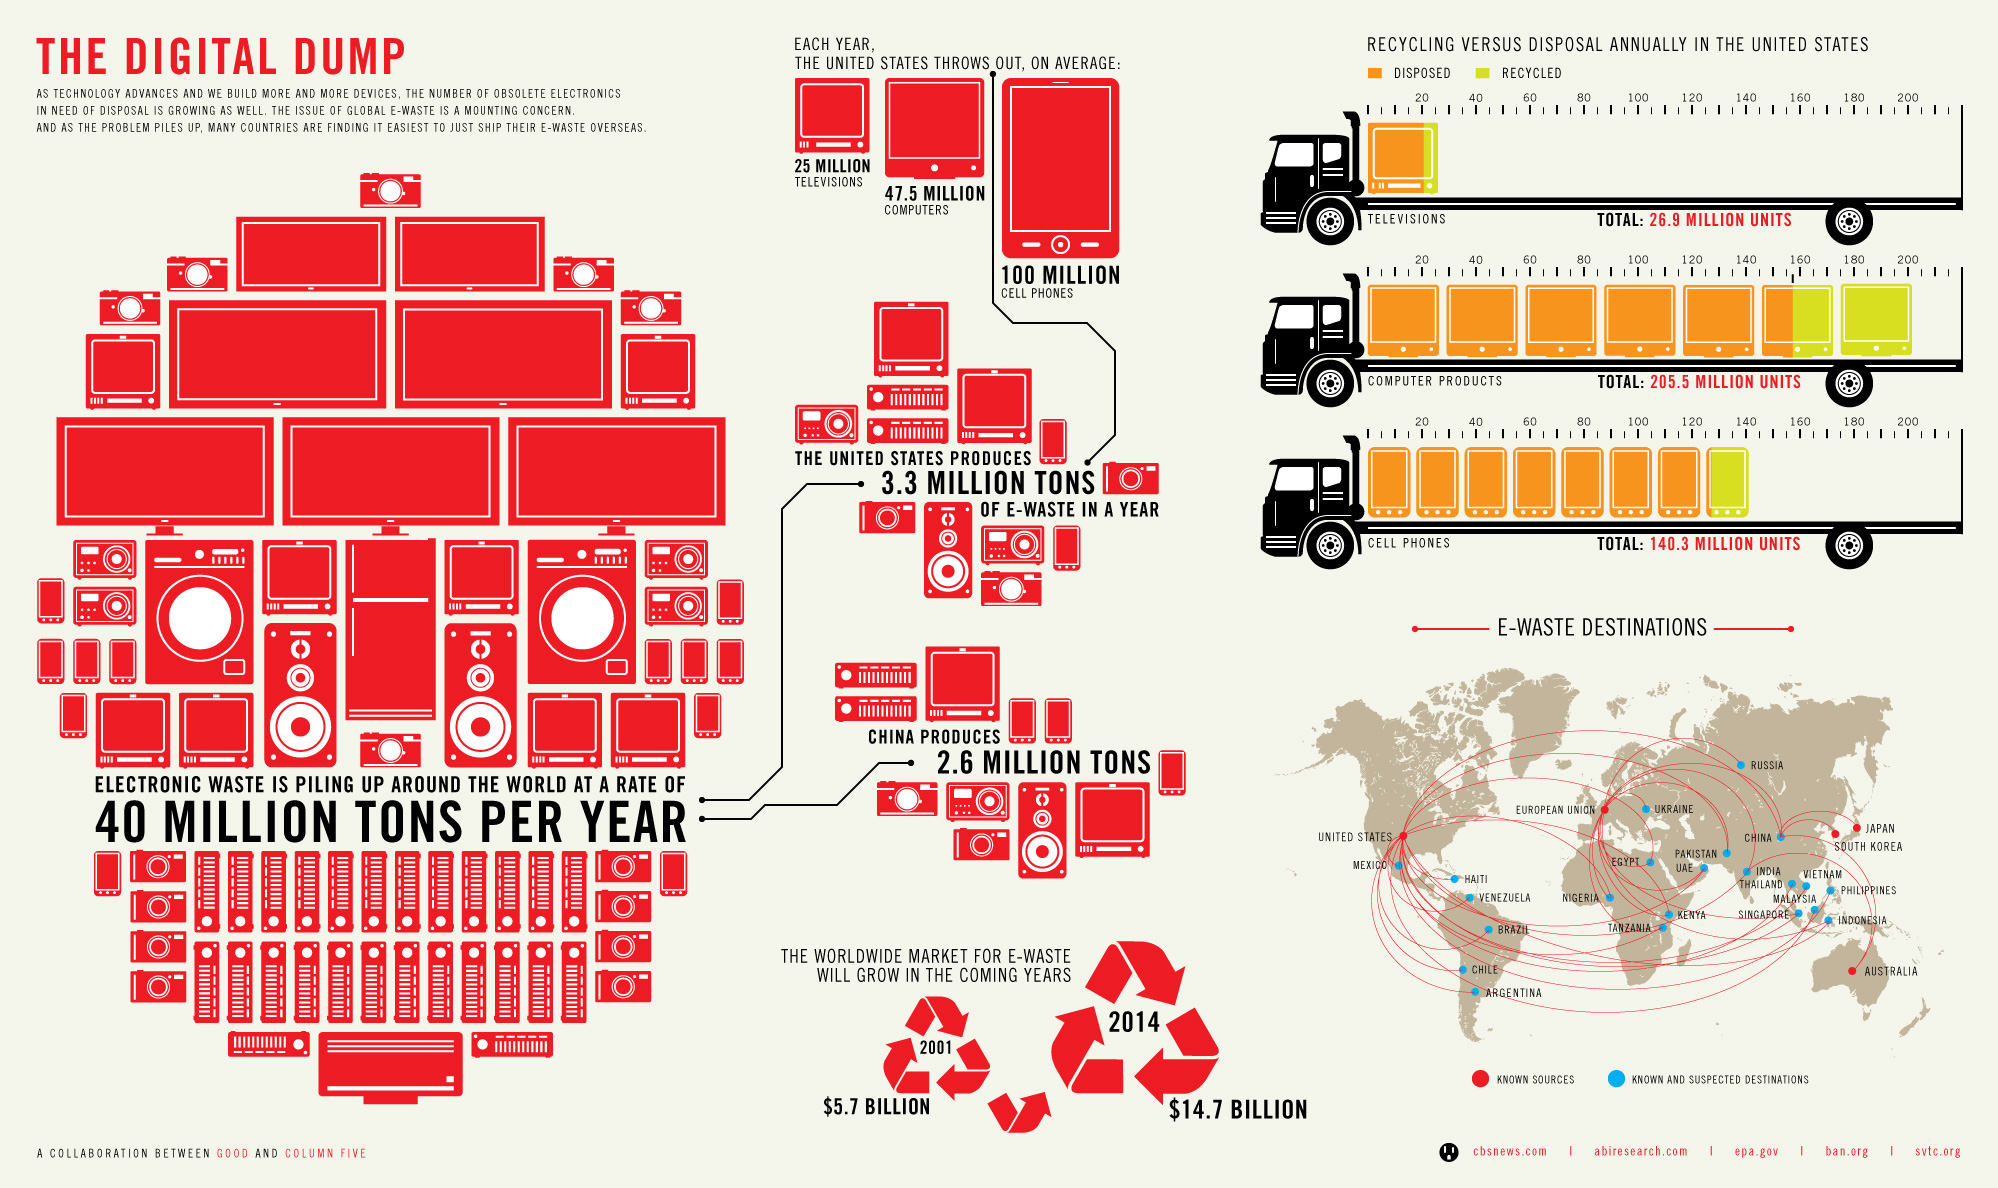 Infographic by Column Five